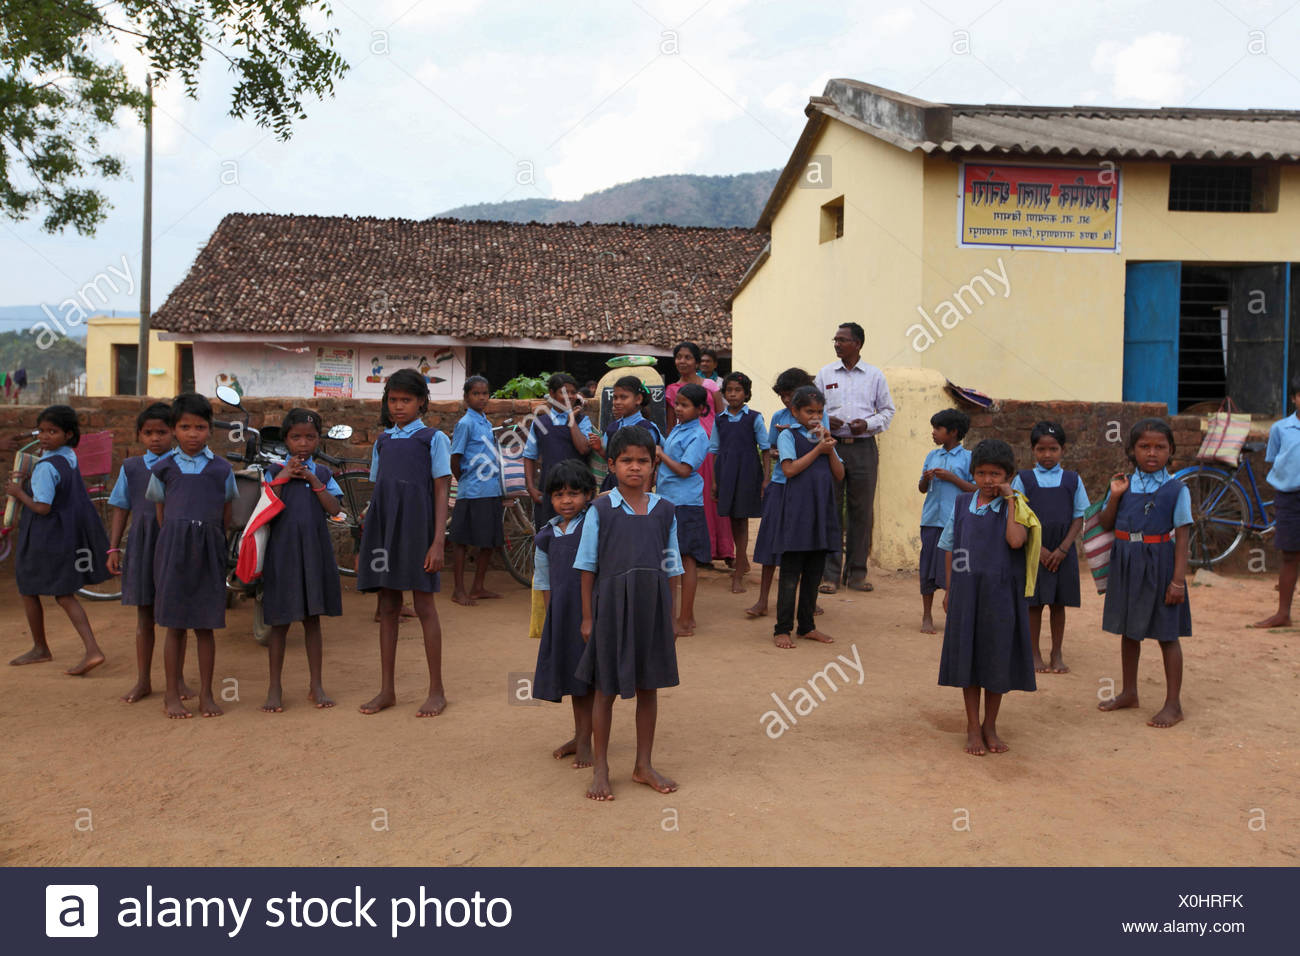 School children in front of the school, Dhanura, Narayanpur District, Chaatisgadh, India - Stock Image